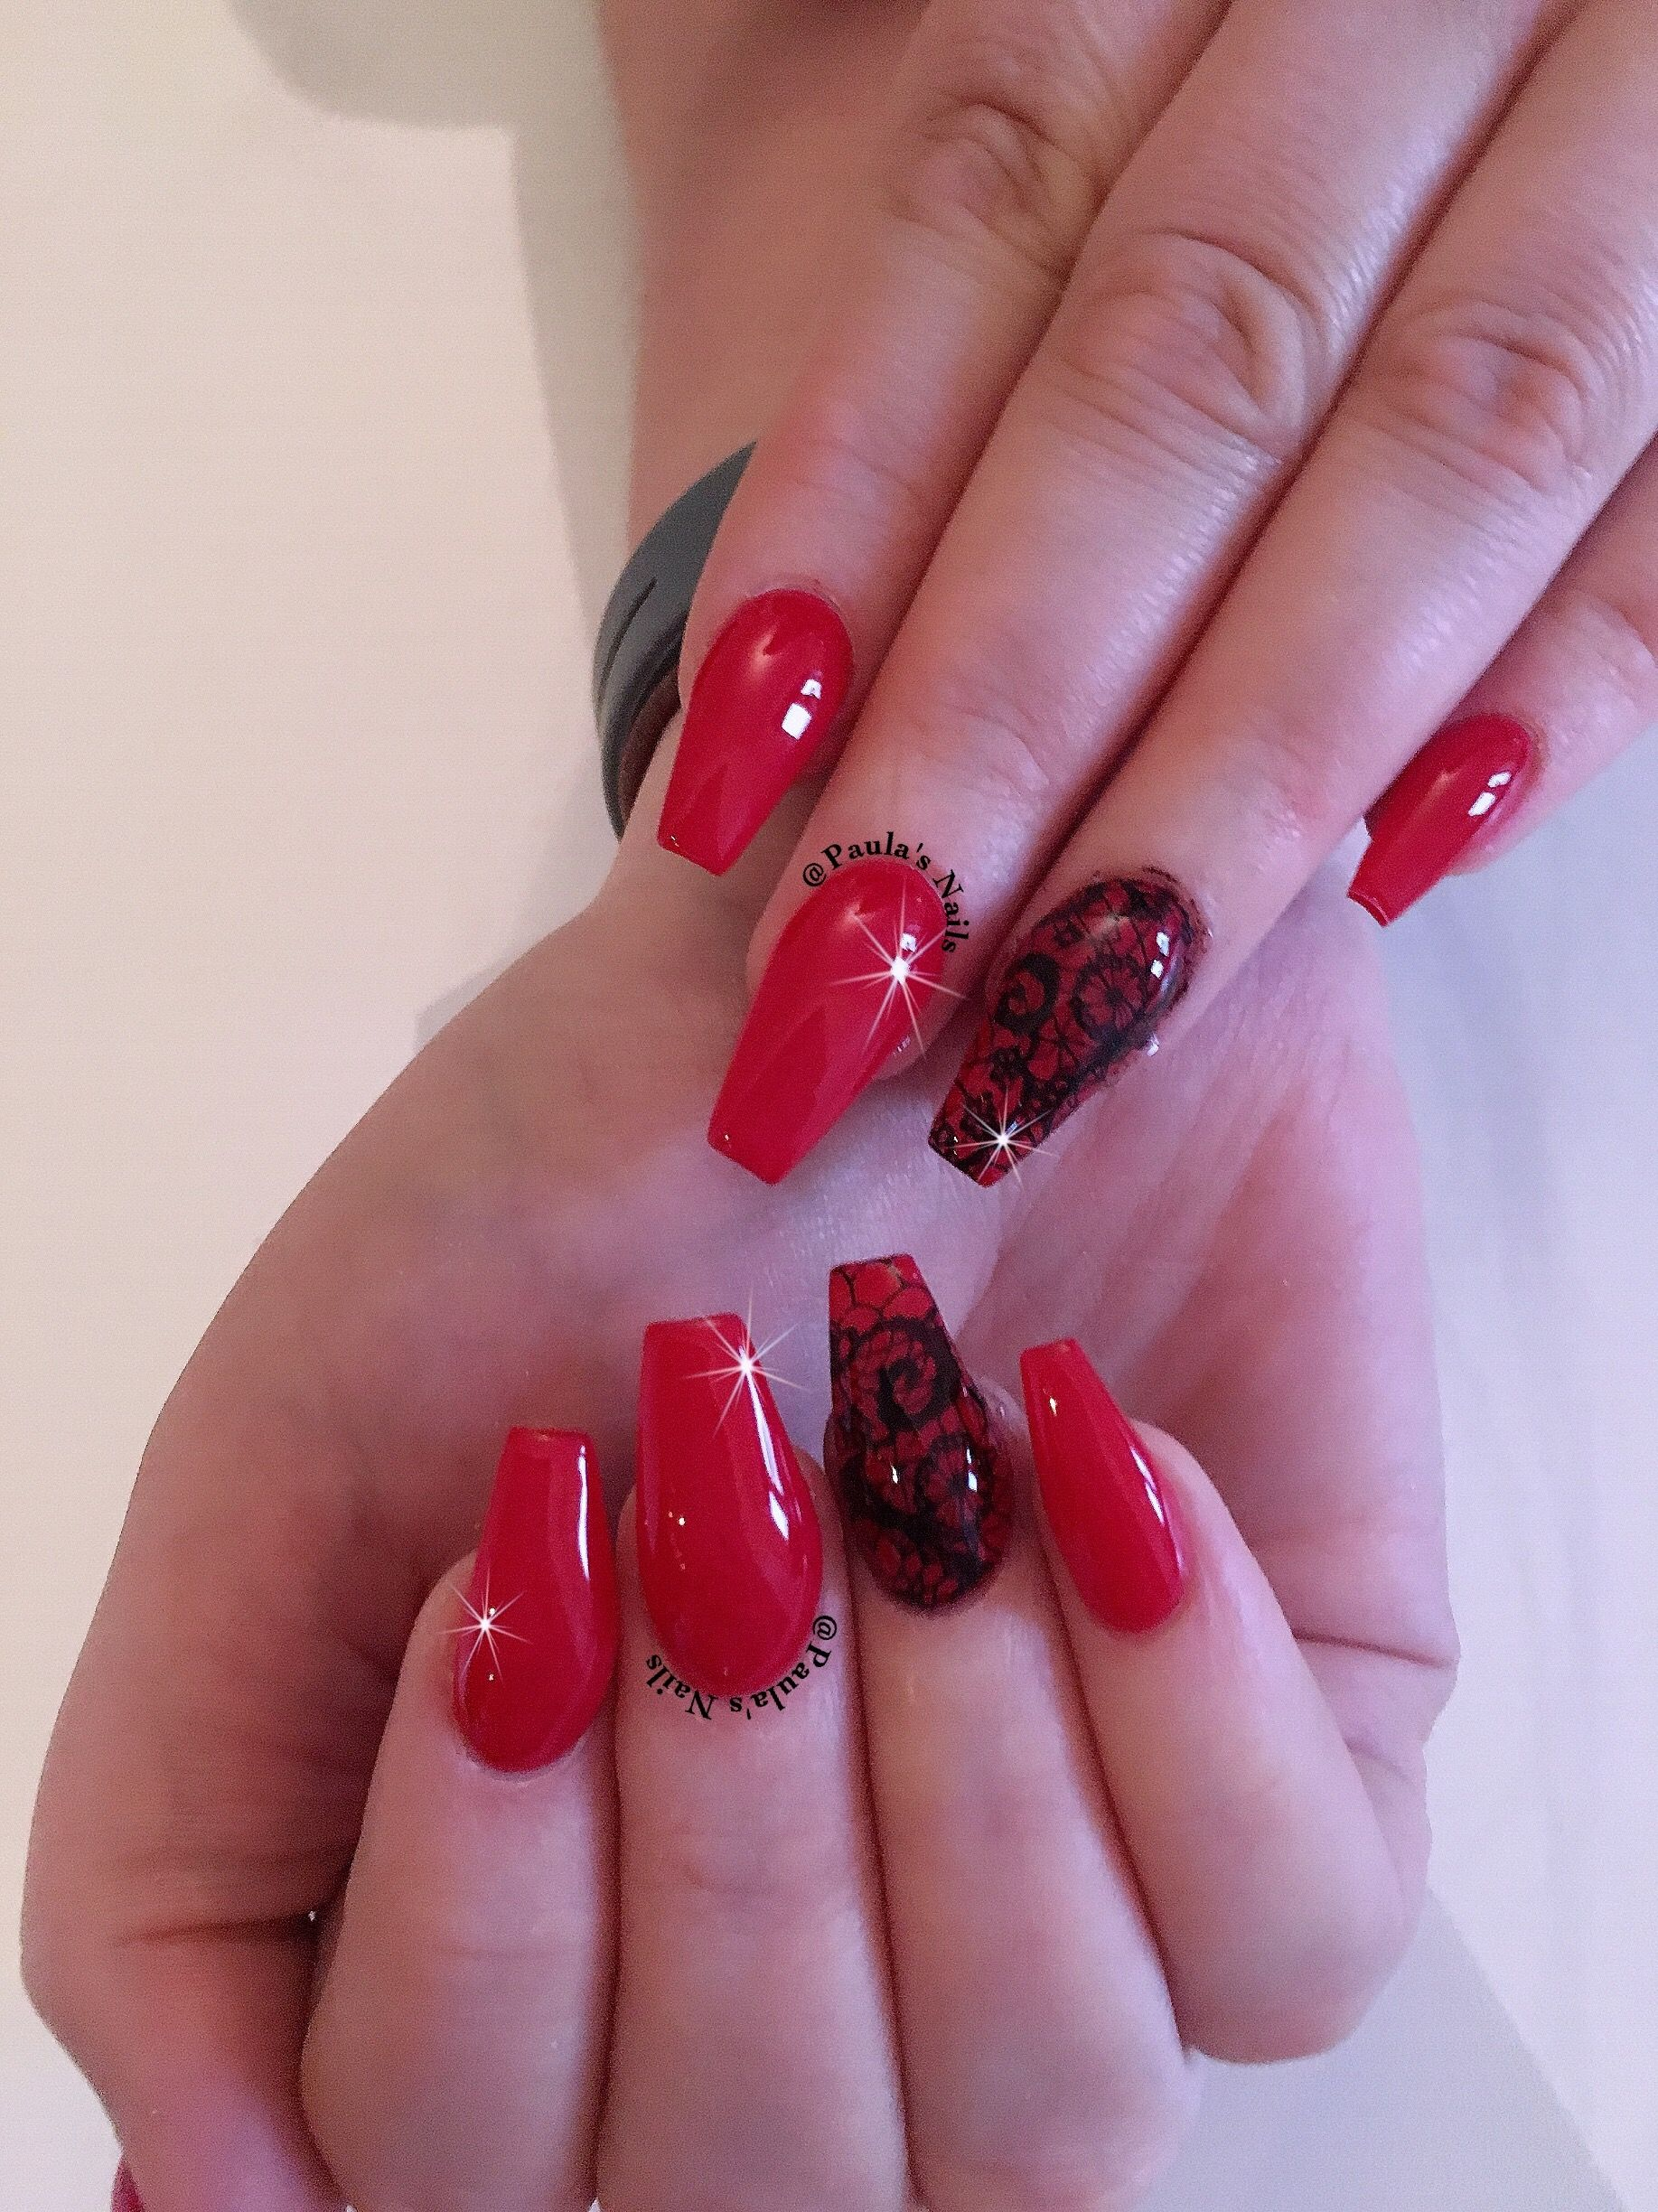 Red Acrylic Nails With Black Lace Red Acrylic Nails Lace Nails Lace Nail Design